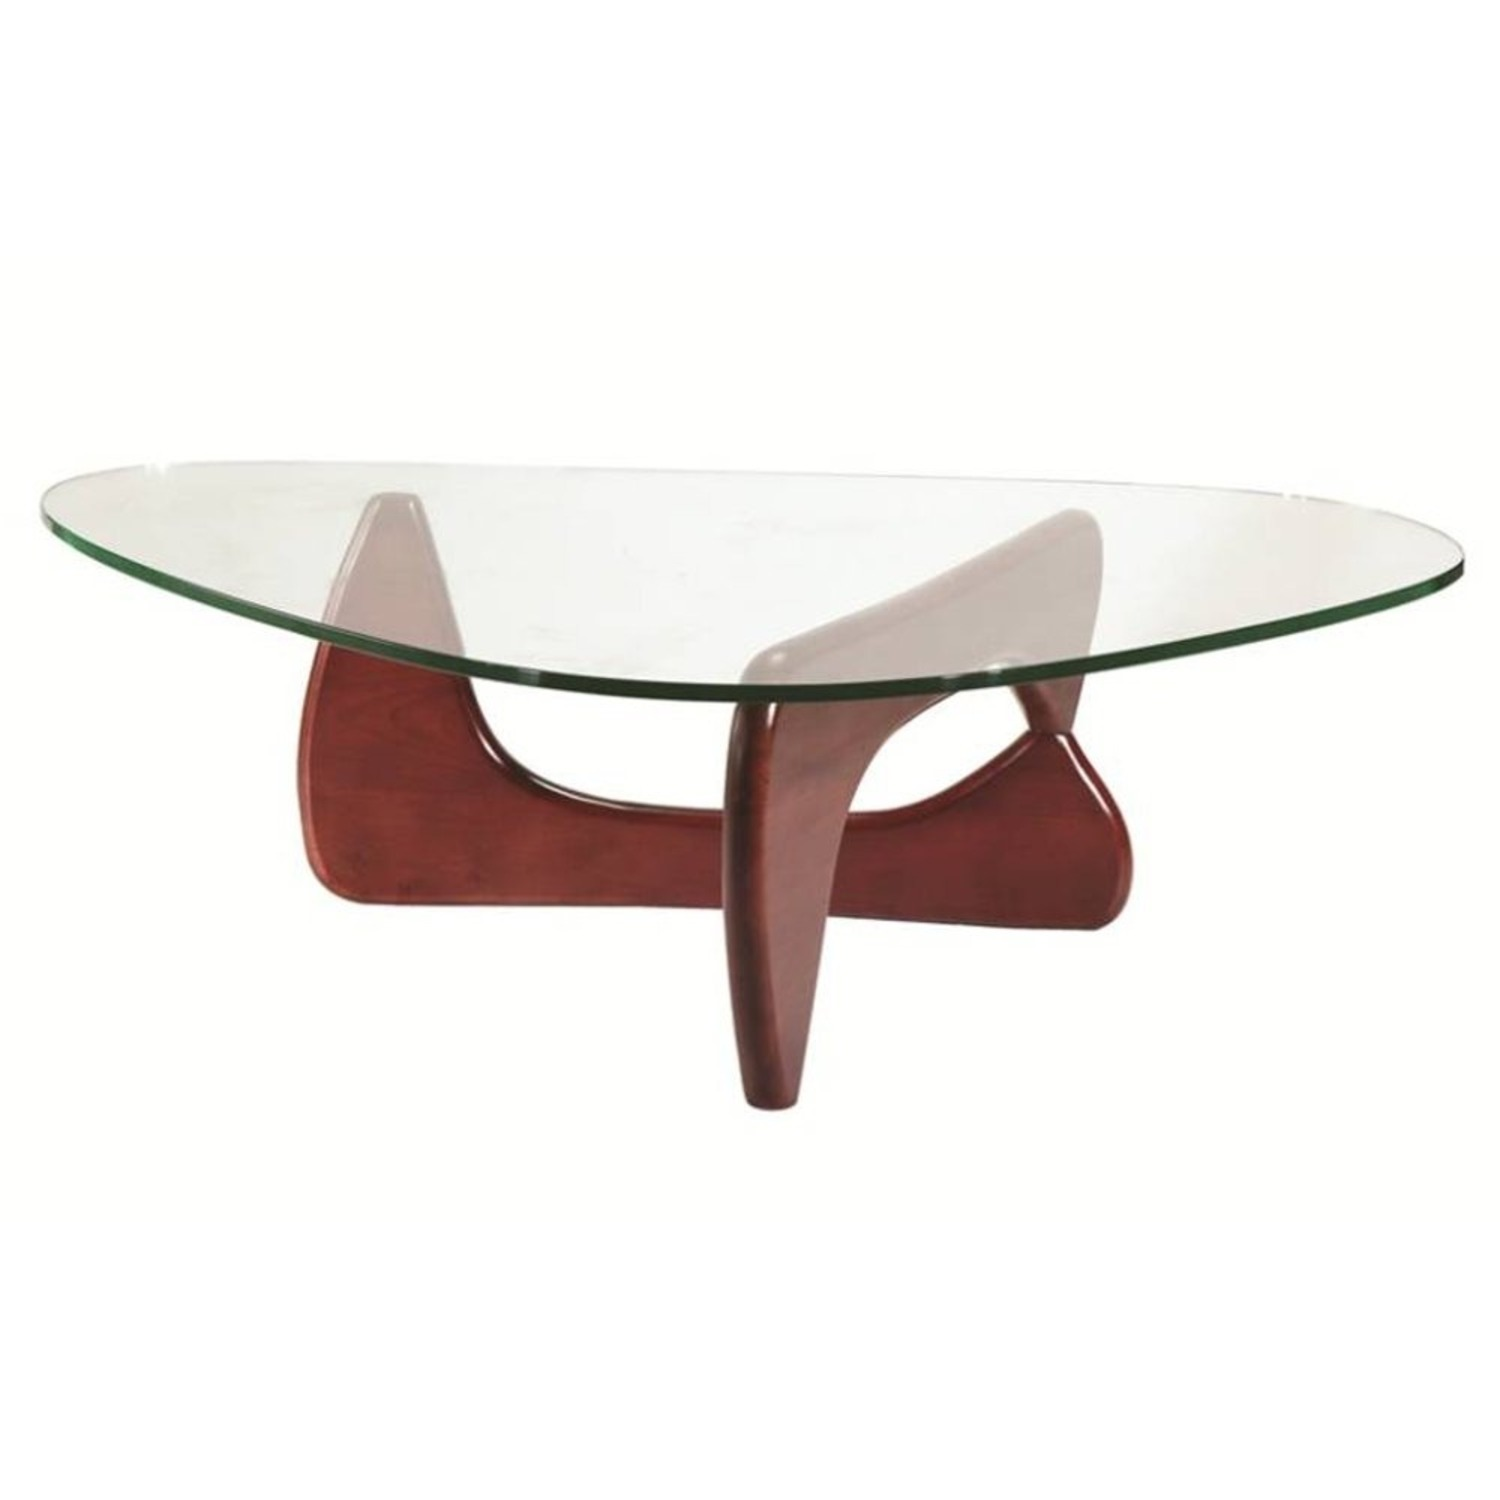 Coffee Table In Cherry Rubberwood W/ Glass Top - image-2